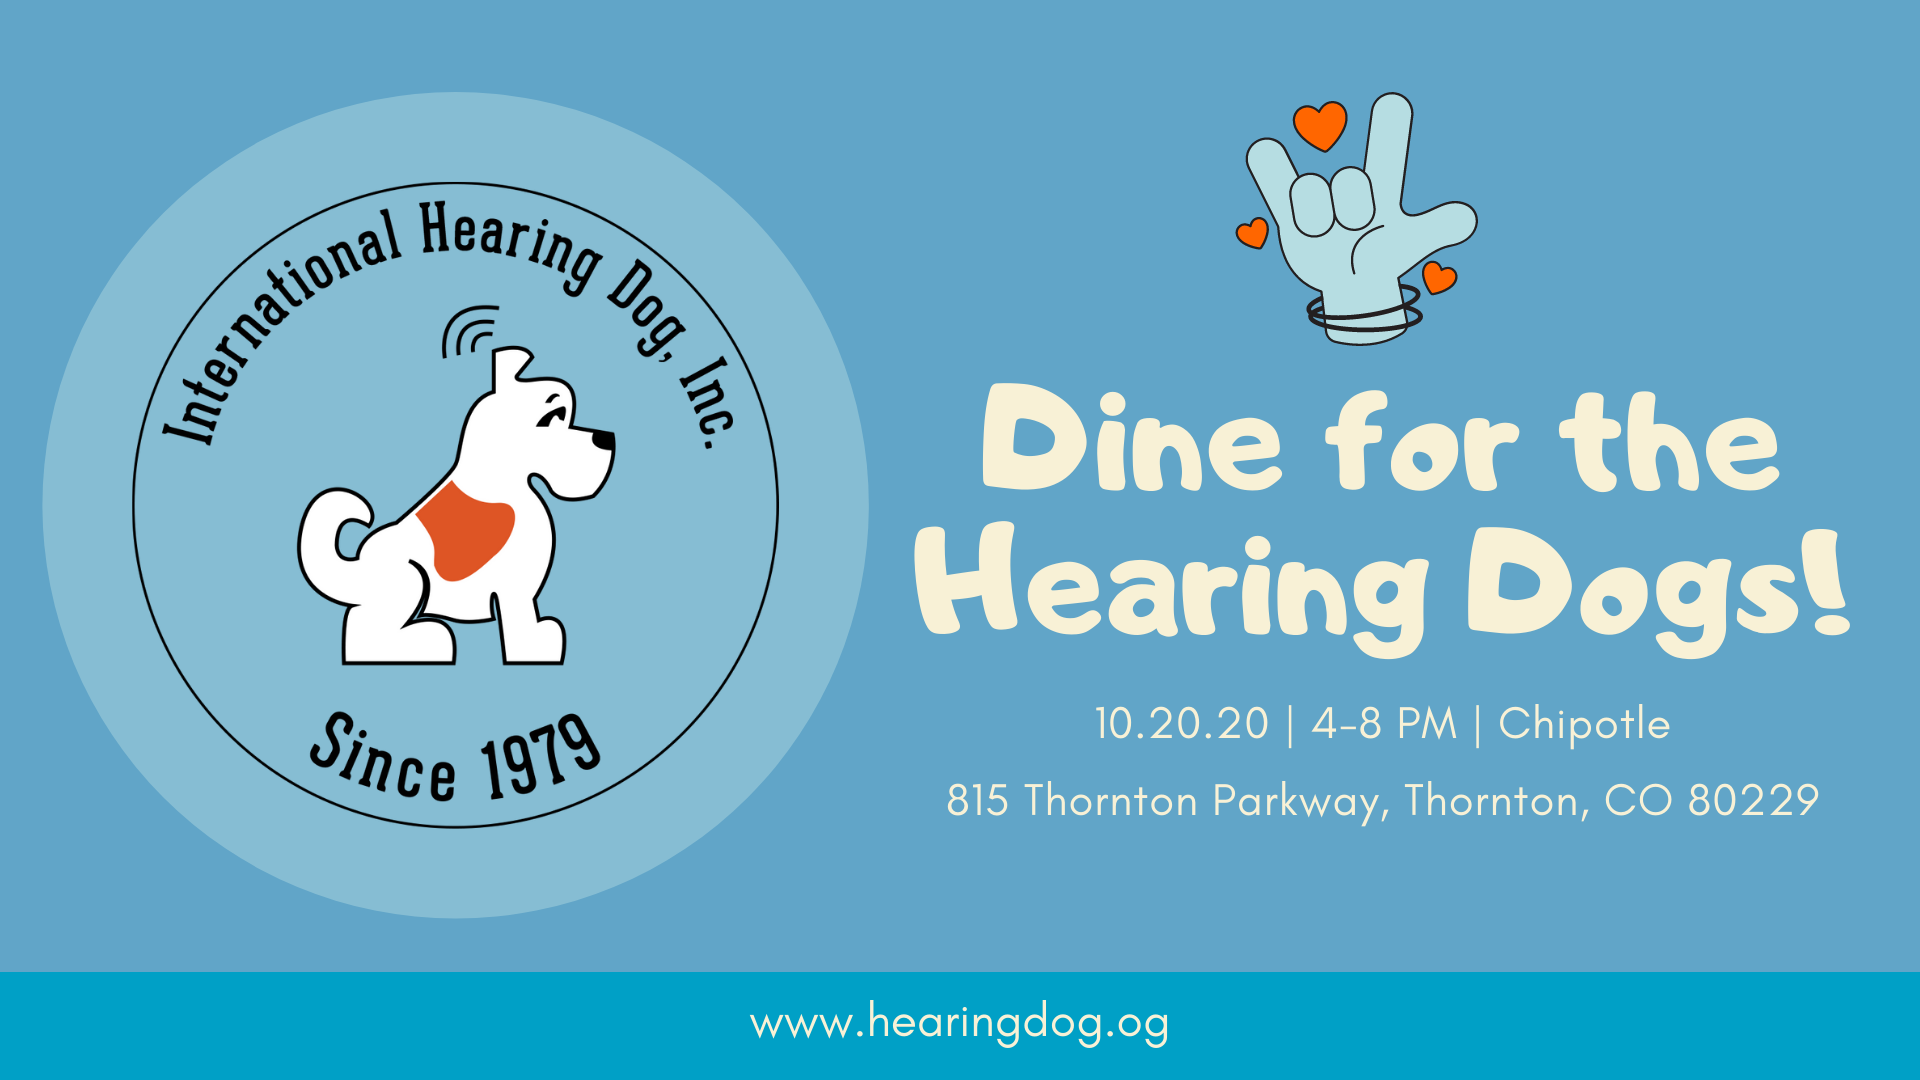 Dine for the Hearing Dogs